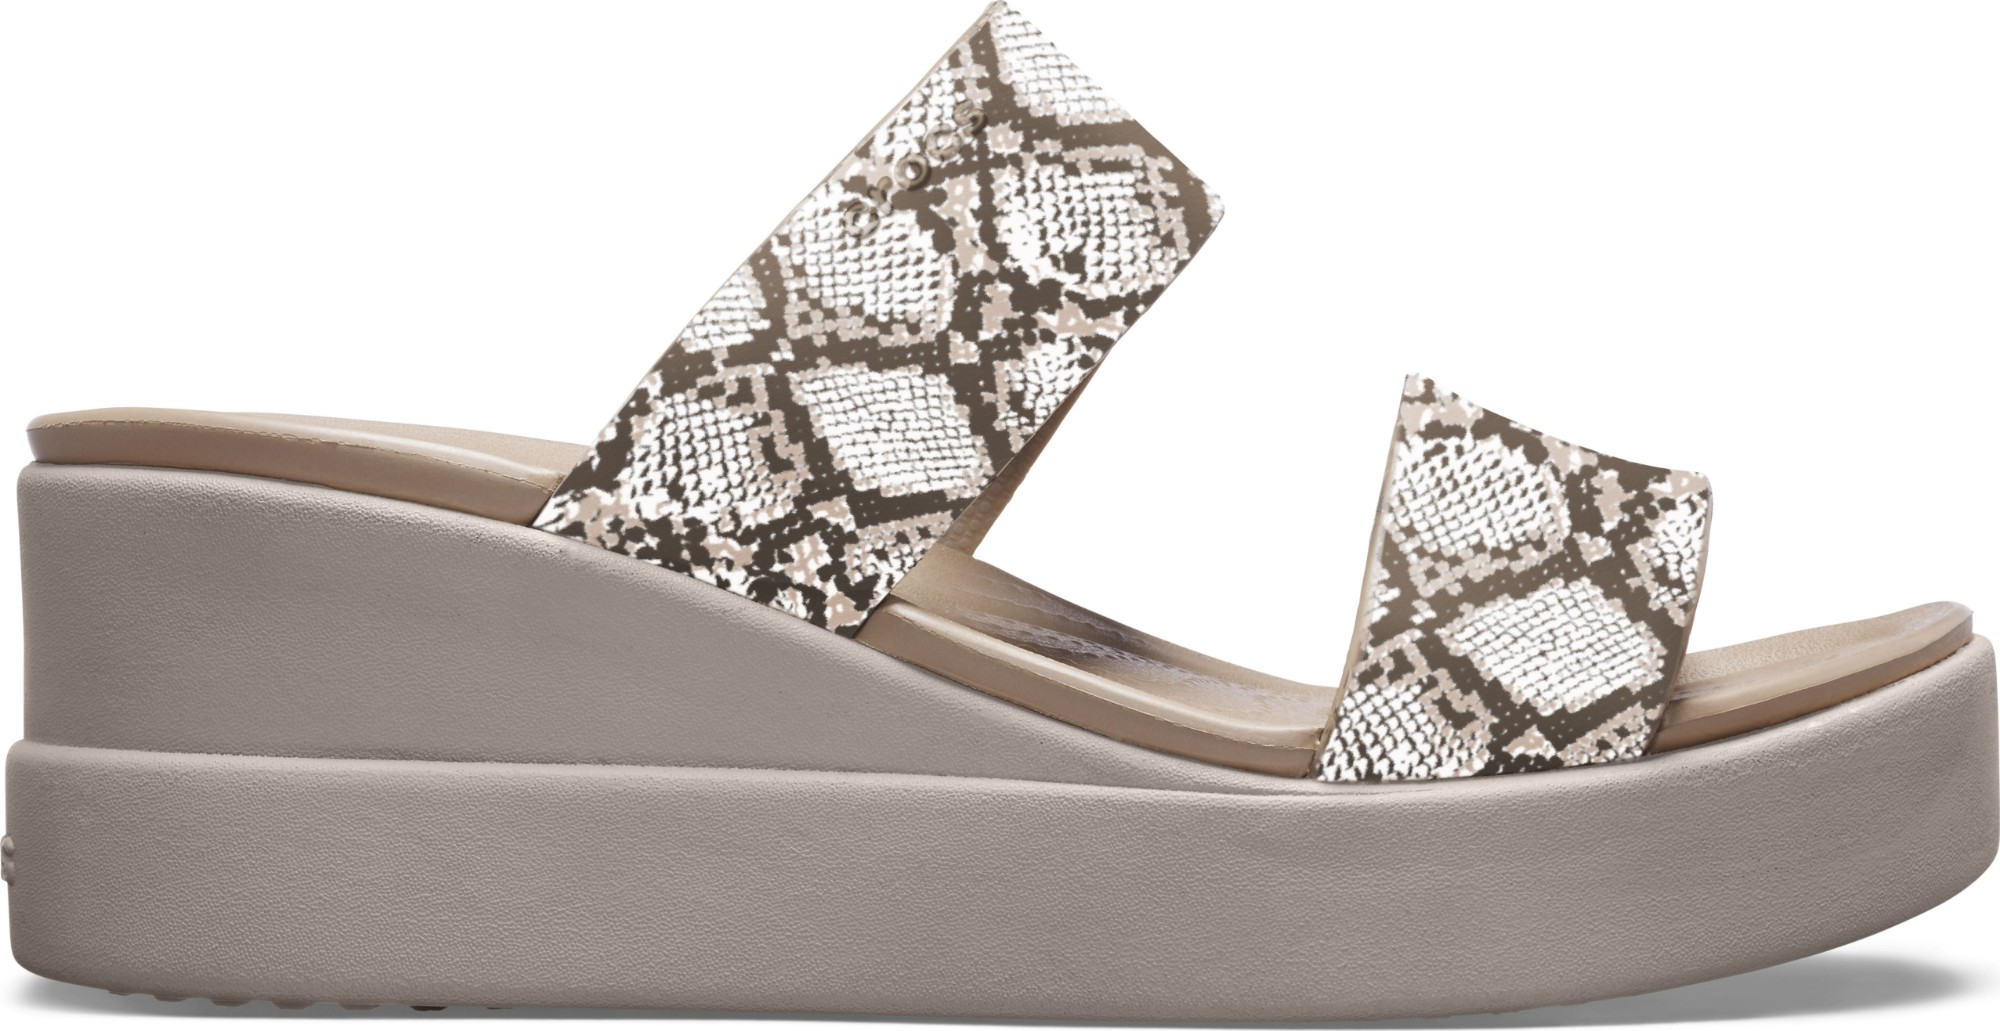 Crocs™ Brooklyn Mid Wedge Womens Multi/Stucco 35